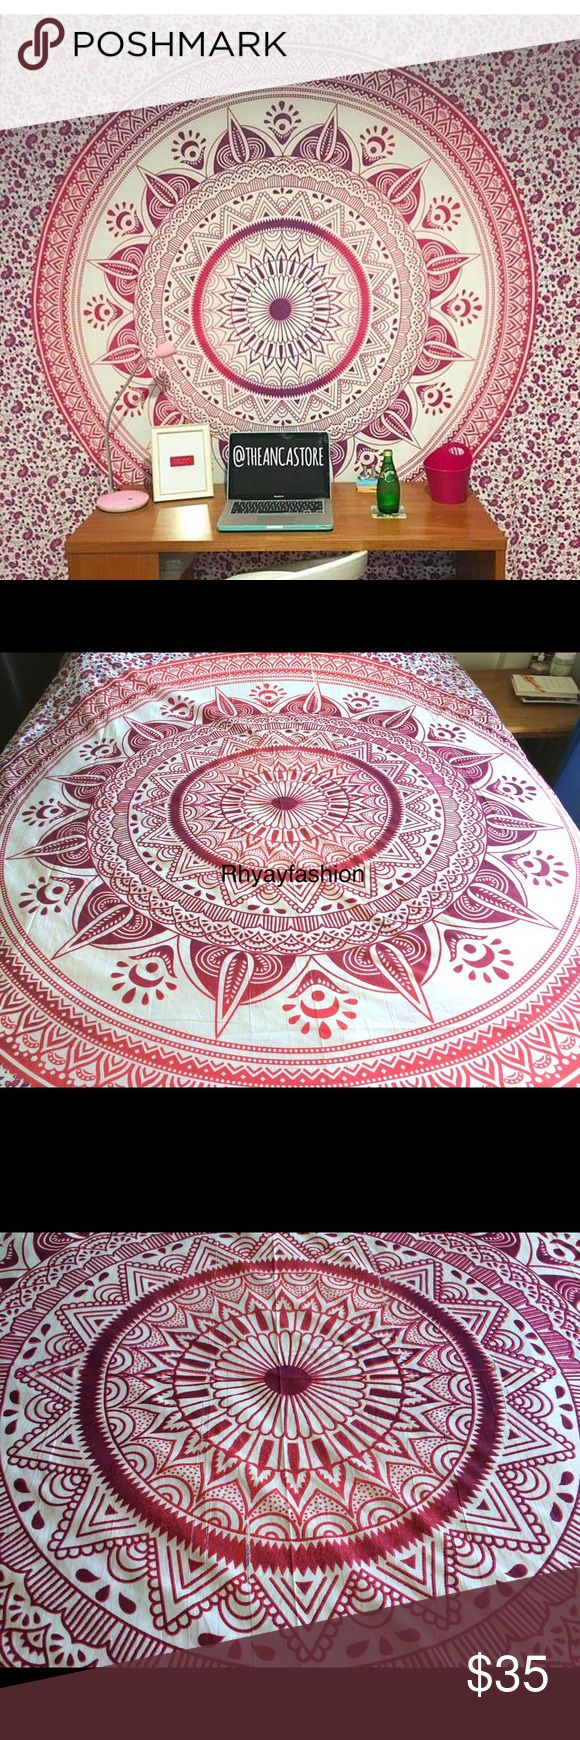 "💥Wall Decor Tapestry Mandala decor Teens room🎉 Brand new.Handmade with natural dyes.  Uses: bed spread, couch spread, curtains, wallhangings, Celling decor, beach mat, picnic mat, table cloth, yoga & meditation.  Size: 90"" X 84"" inch ( Queen bed)   Material;100% Cotton  Wash: cold wash Jackets & Coats Blazers"